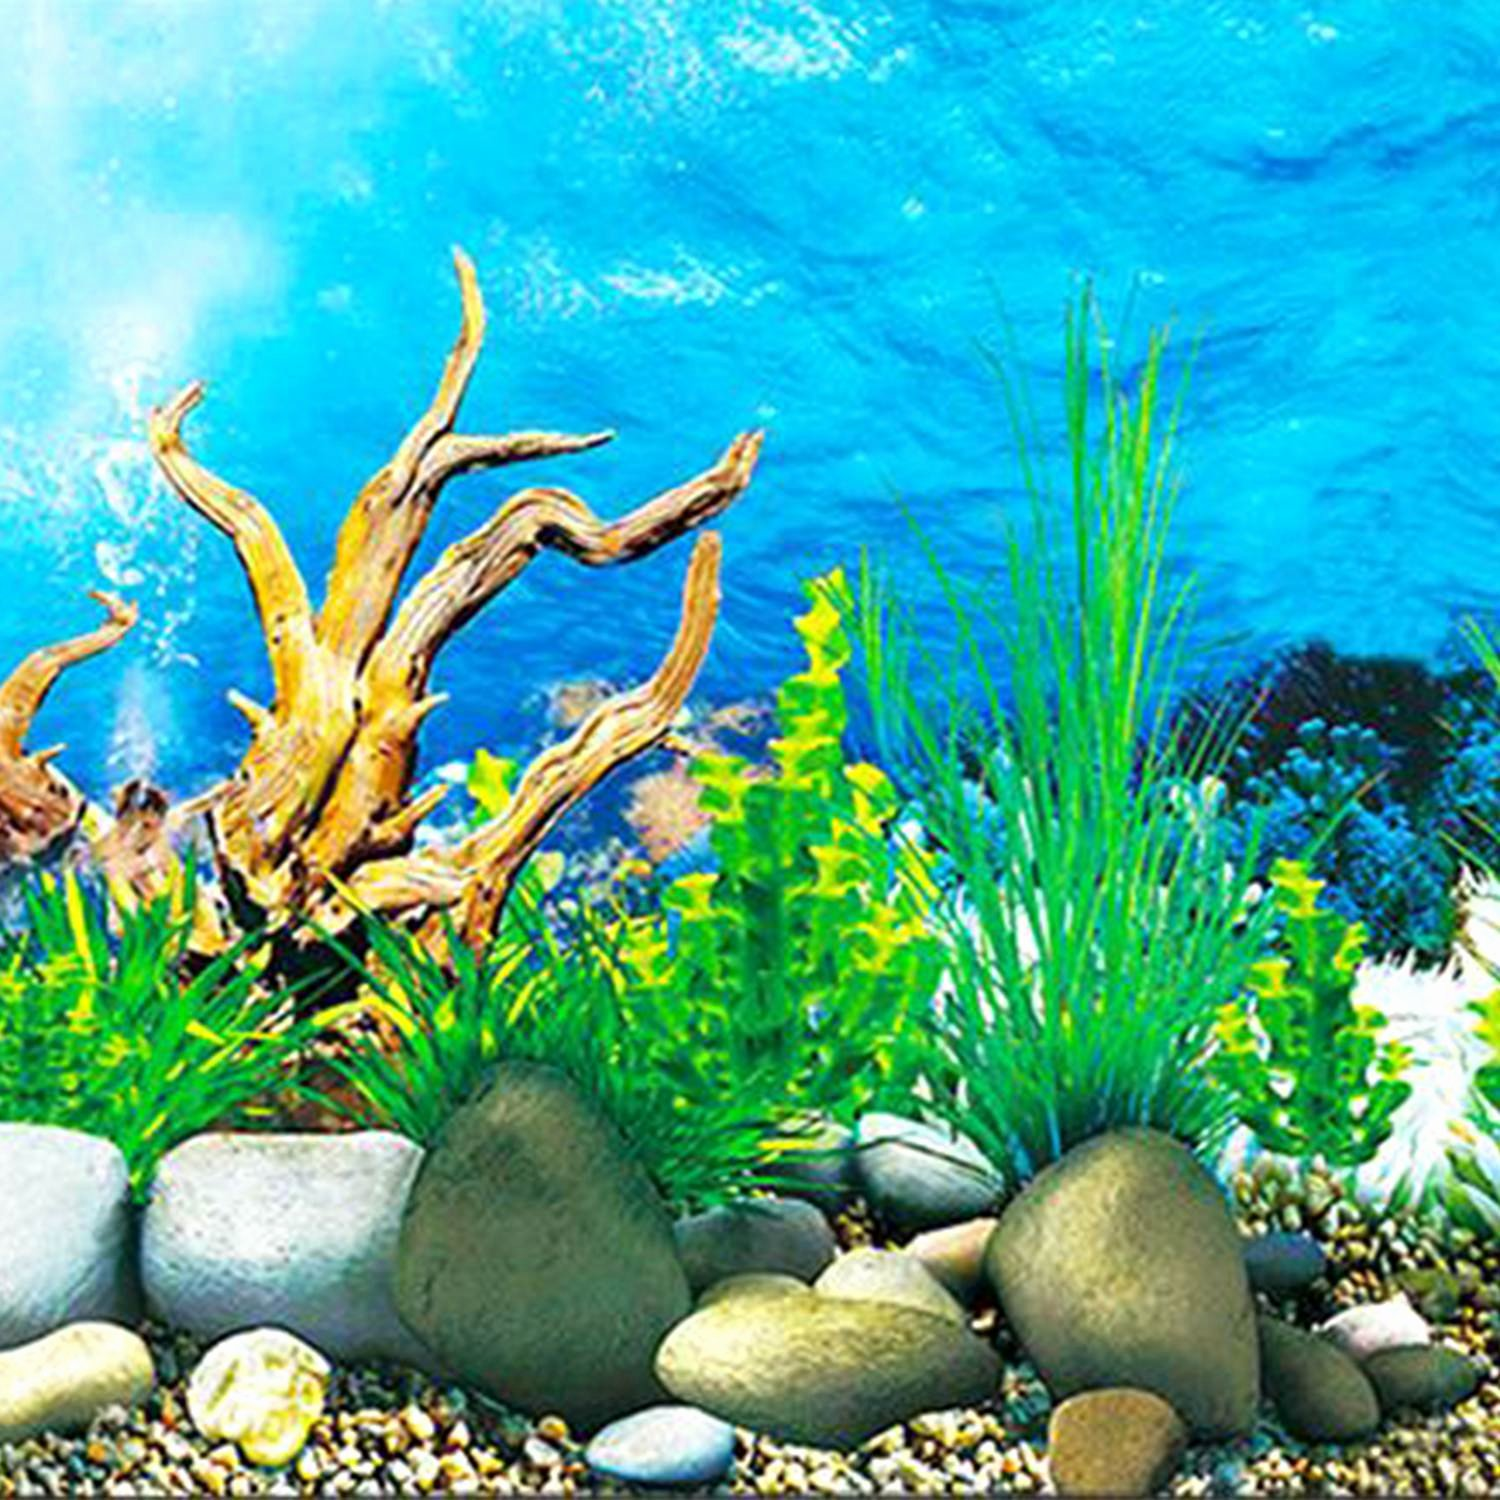 3d Fish Tank Wallpaper Inspirational Ialj top Aquarium Background Paper Hd Picture 3d Three